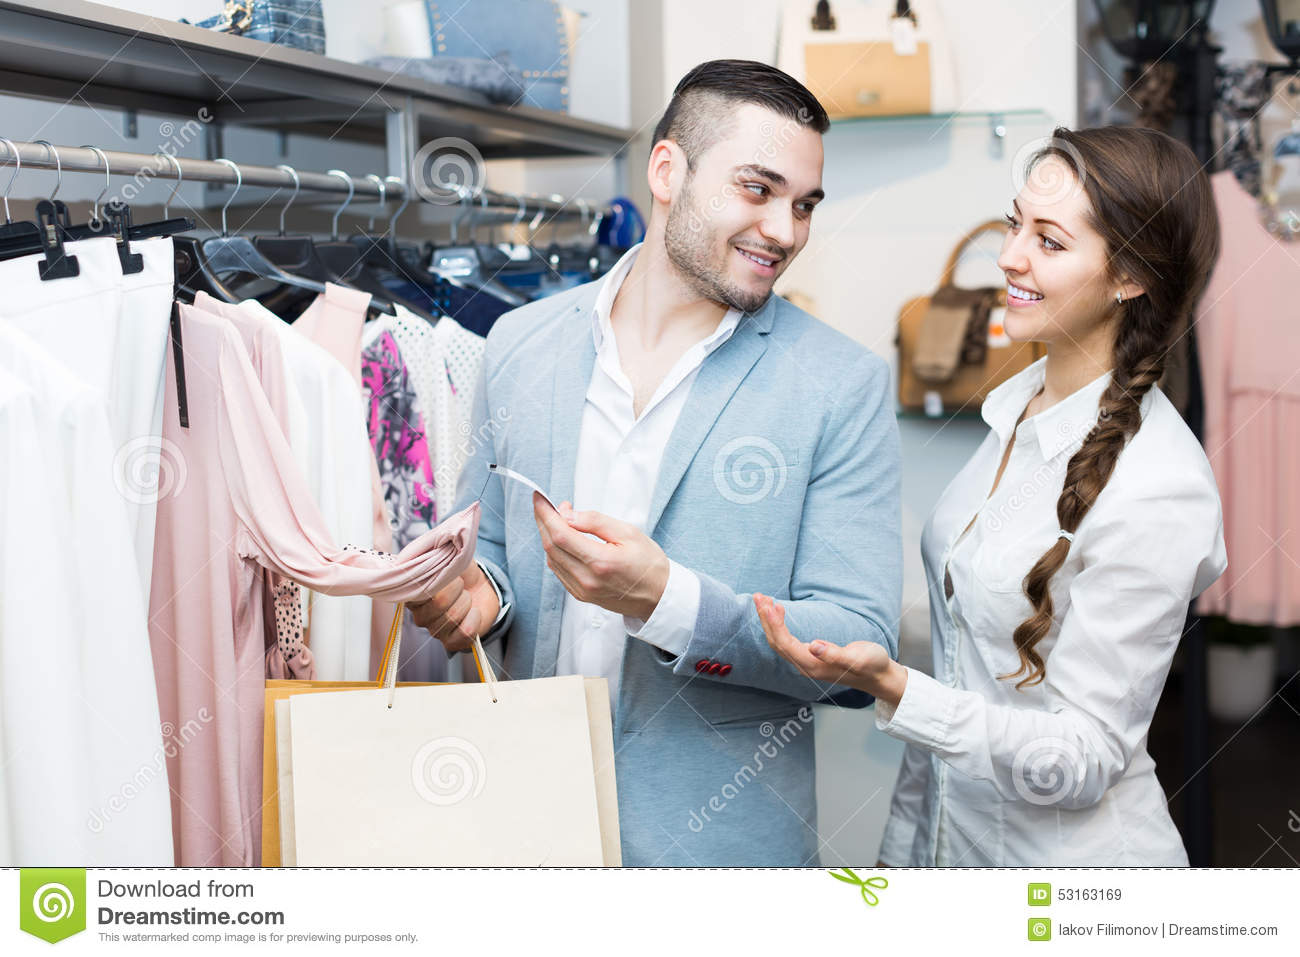 young-couple-clothing-store-portrait-smiling-choosing-new-apparel